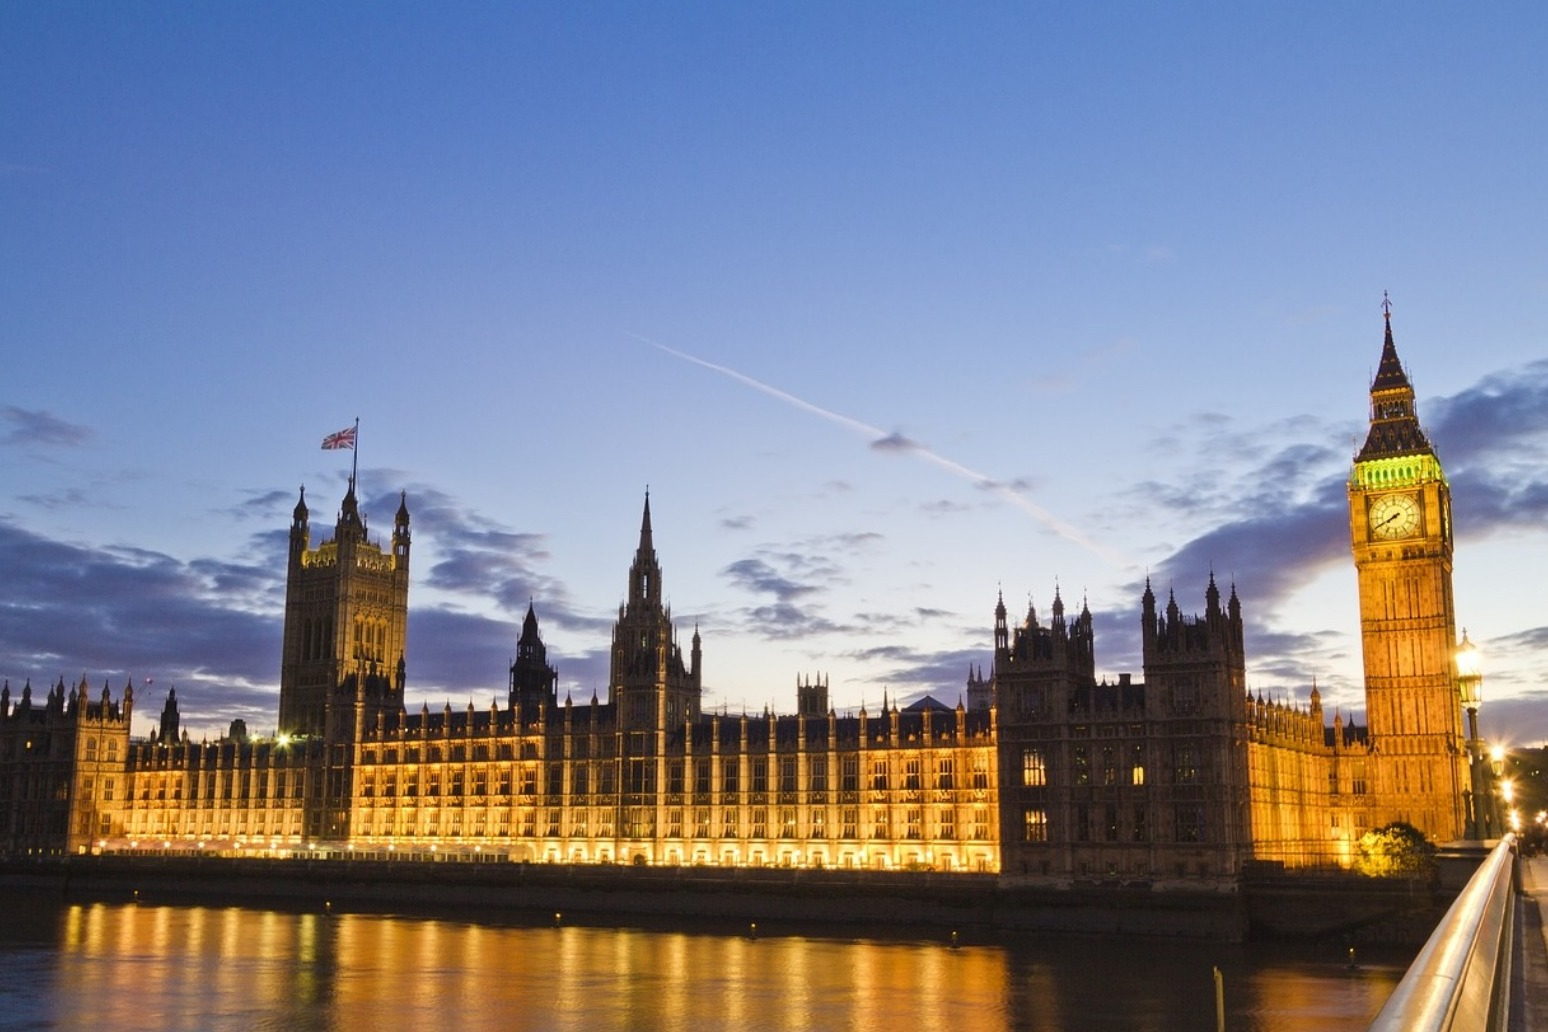 Brexit delay law approved by House of Commons